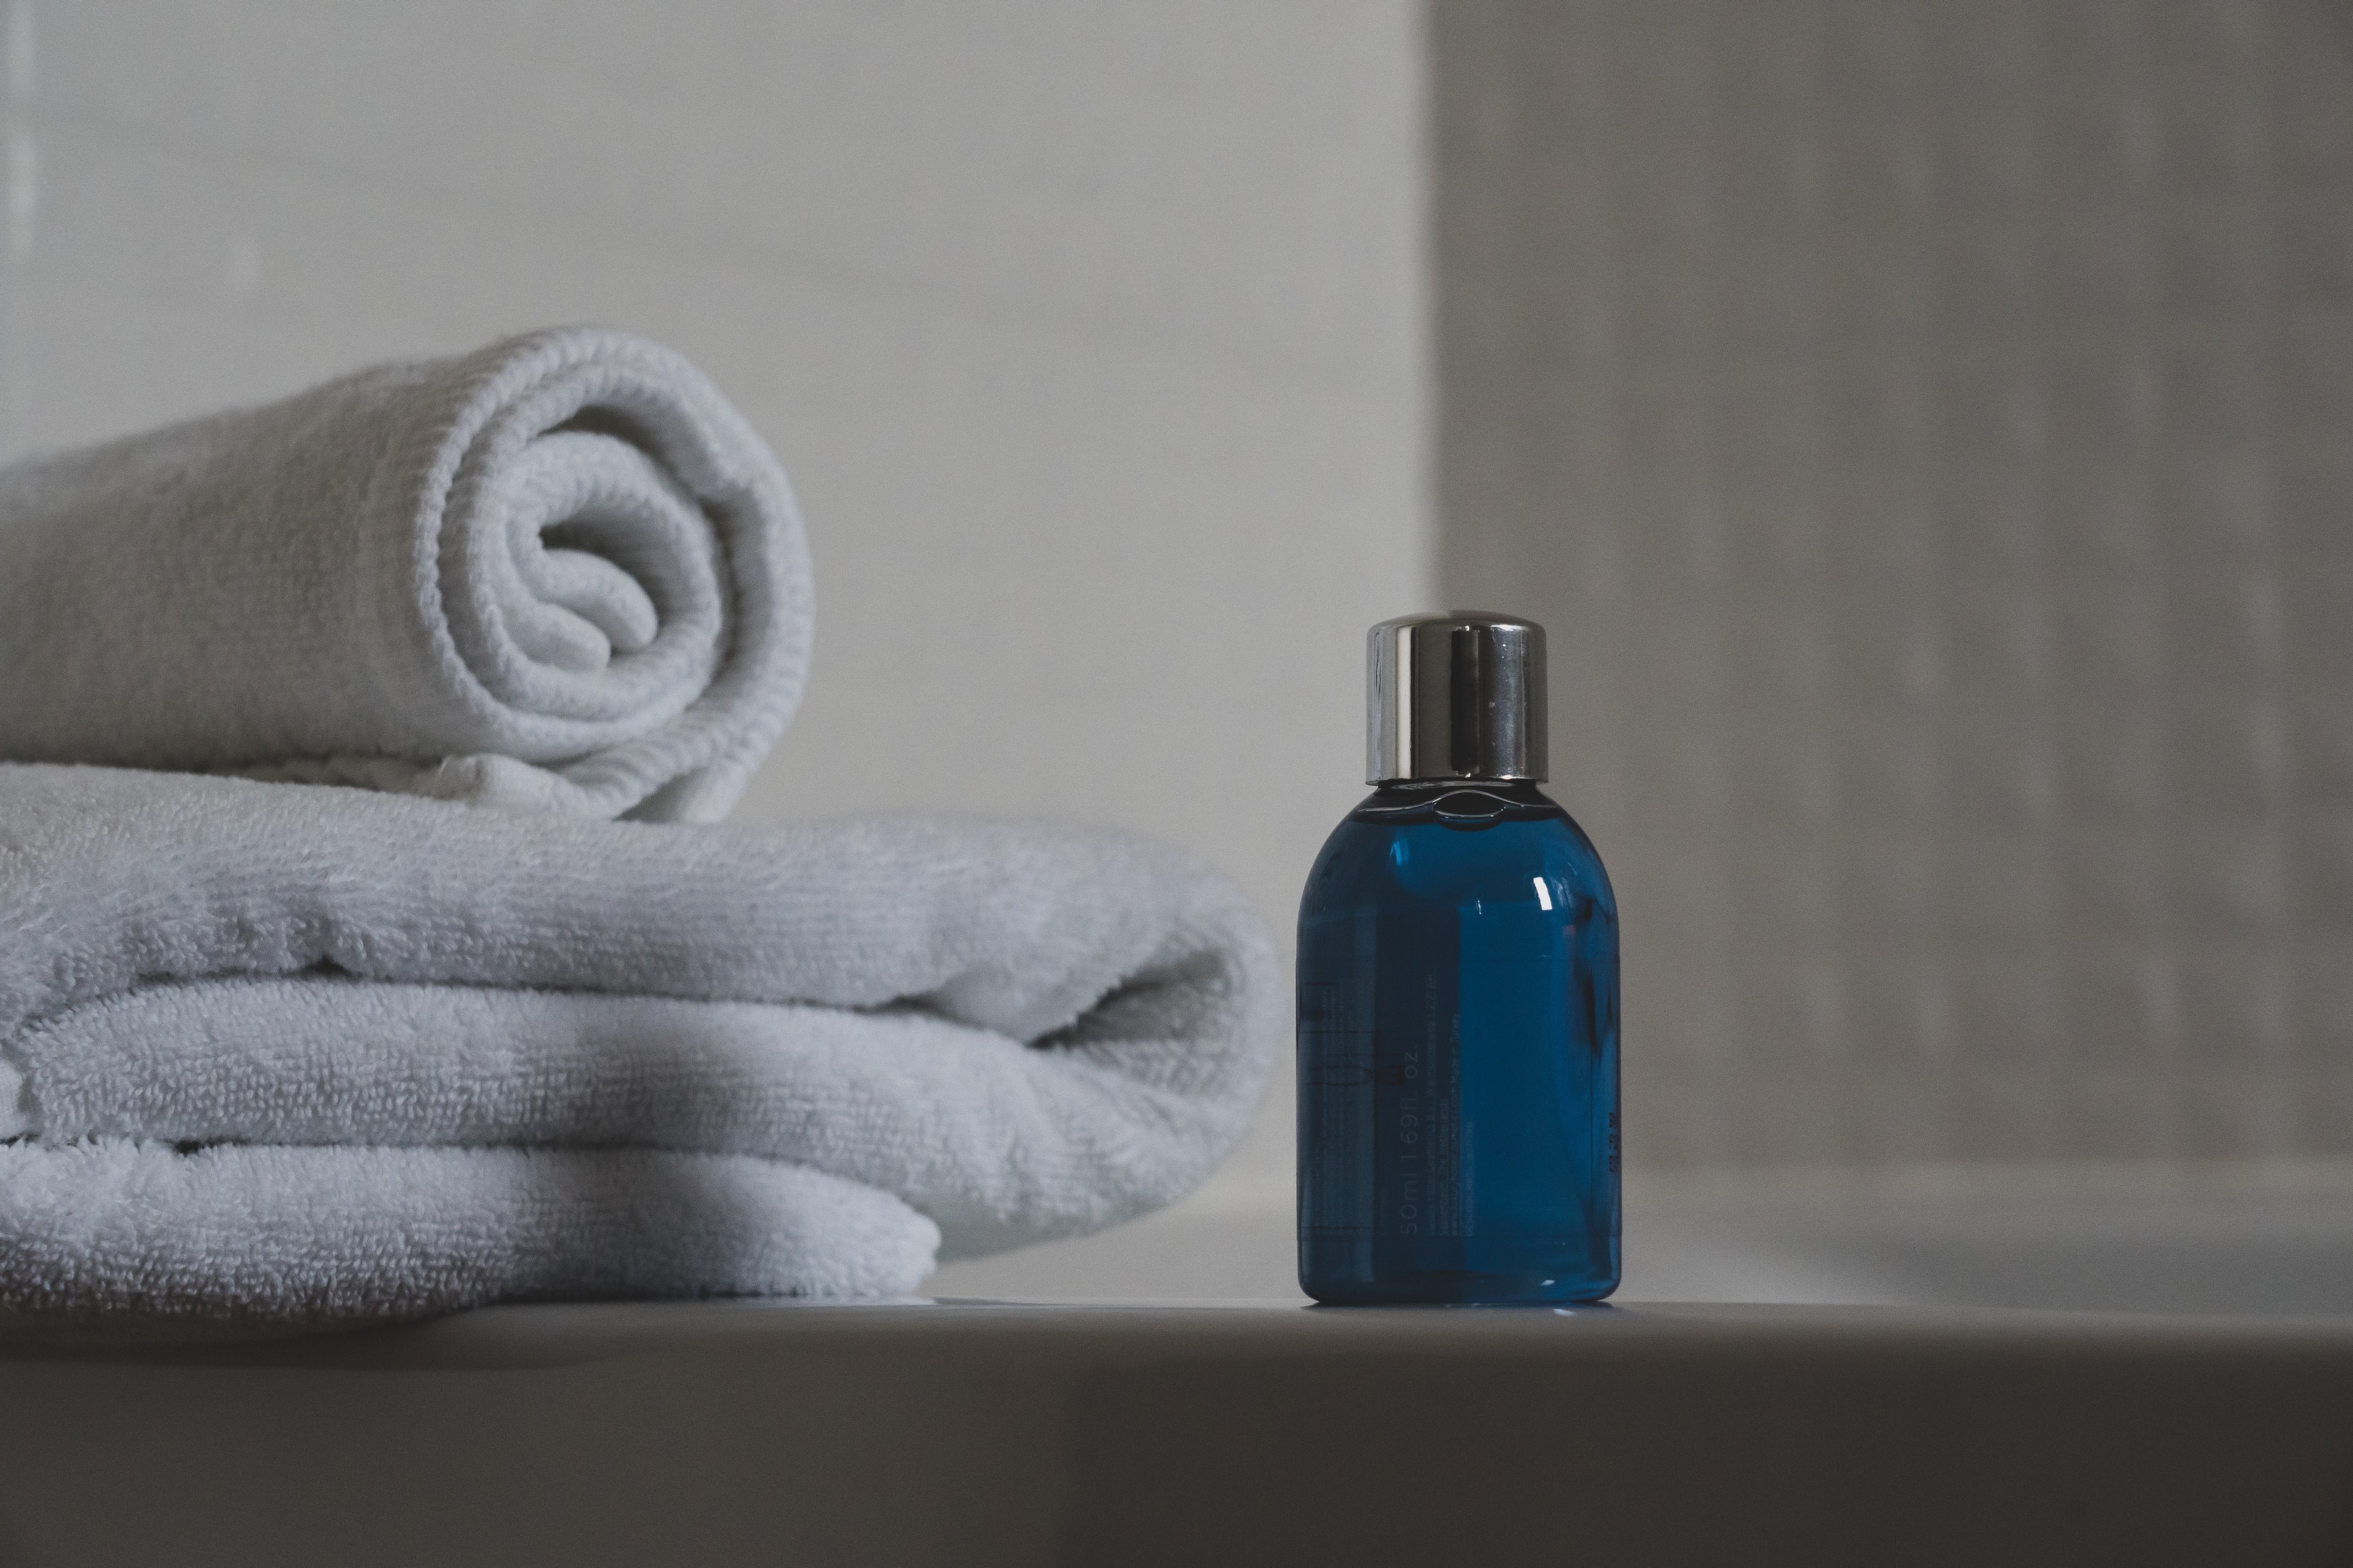 blue glass bottle of body wash beside a white towel.